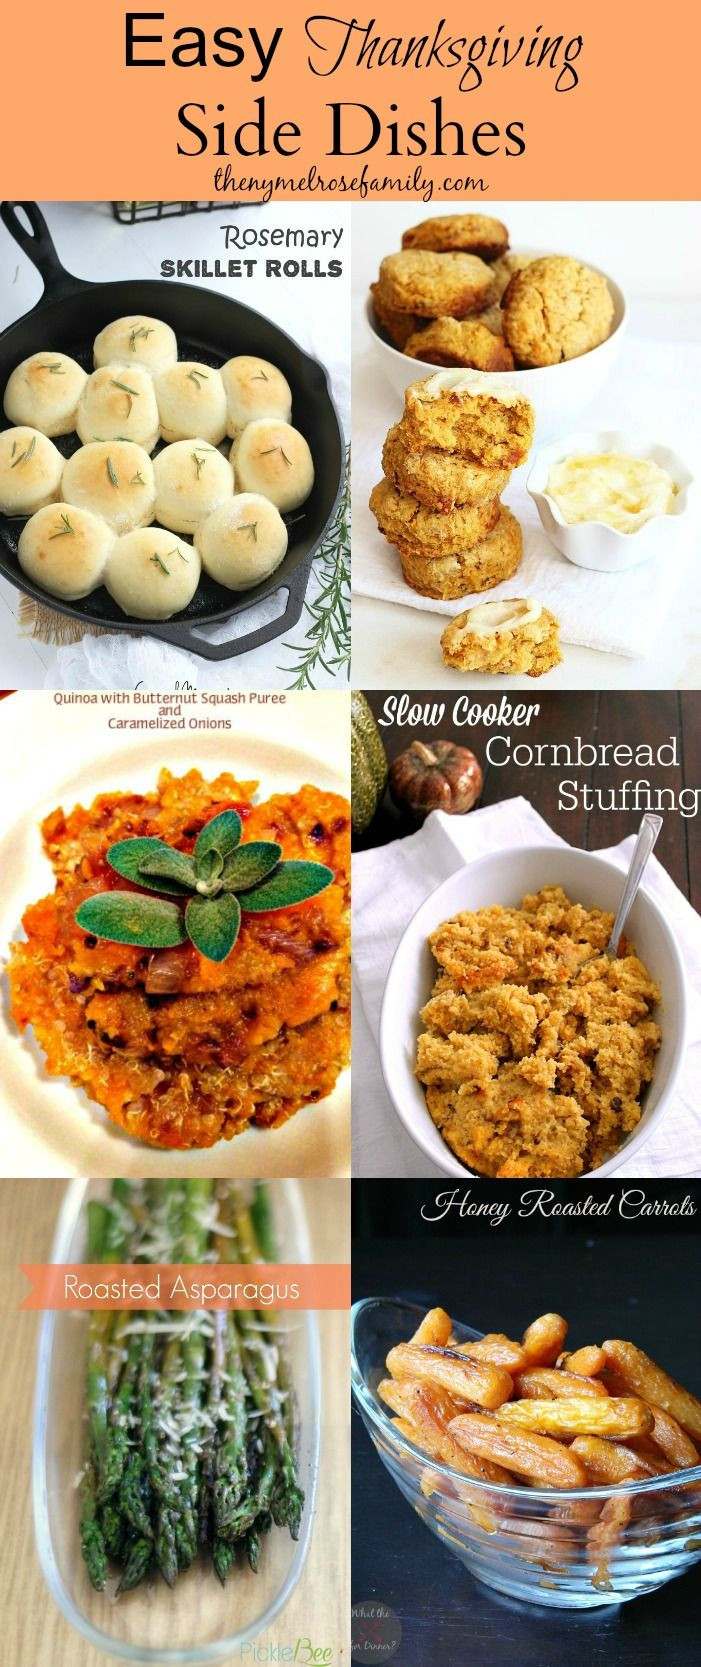 Thanksgiving Easy Side Dishes  199 best images about Easy Thanksgiving Recipes & Crafts